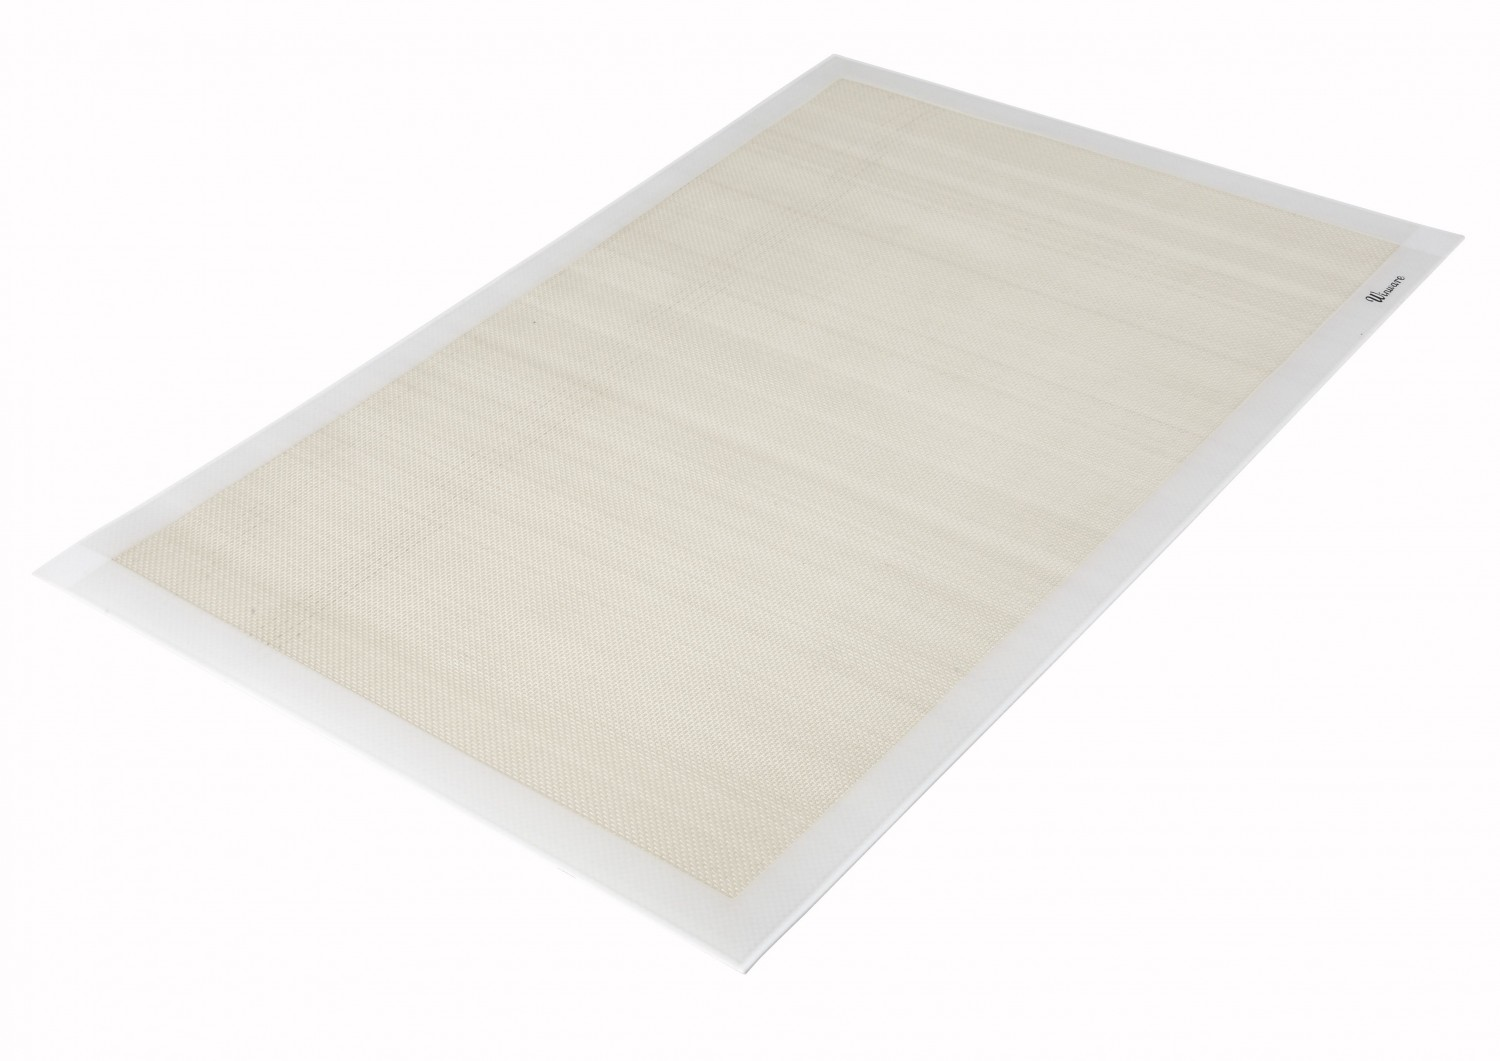 Winco SBS-24 Silicone Square Baking Mats